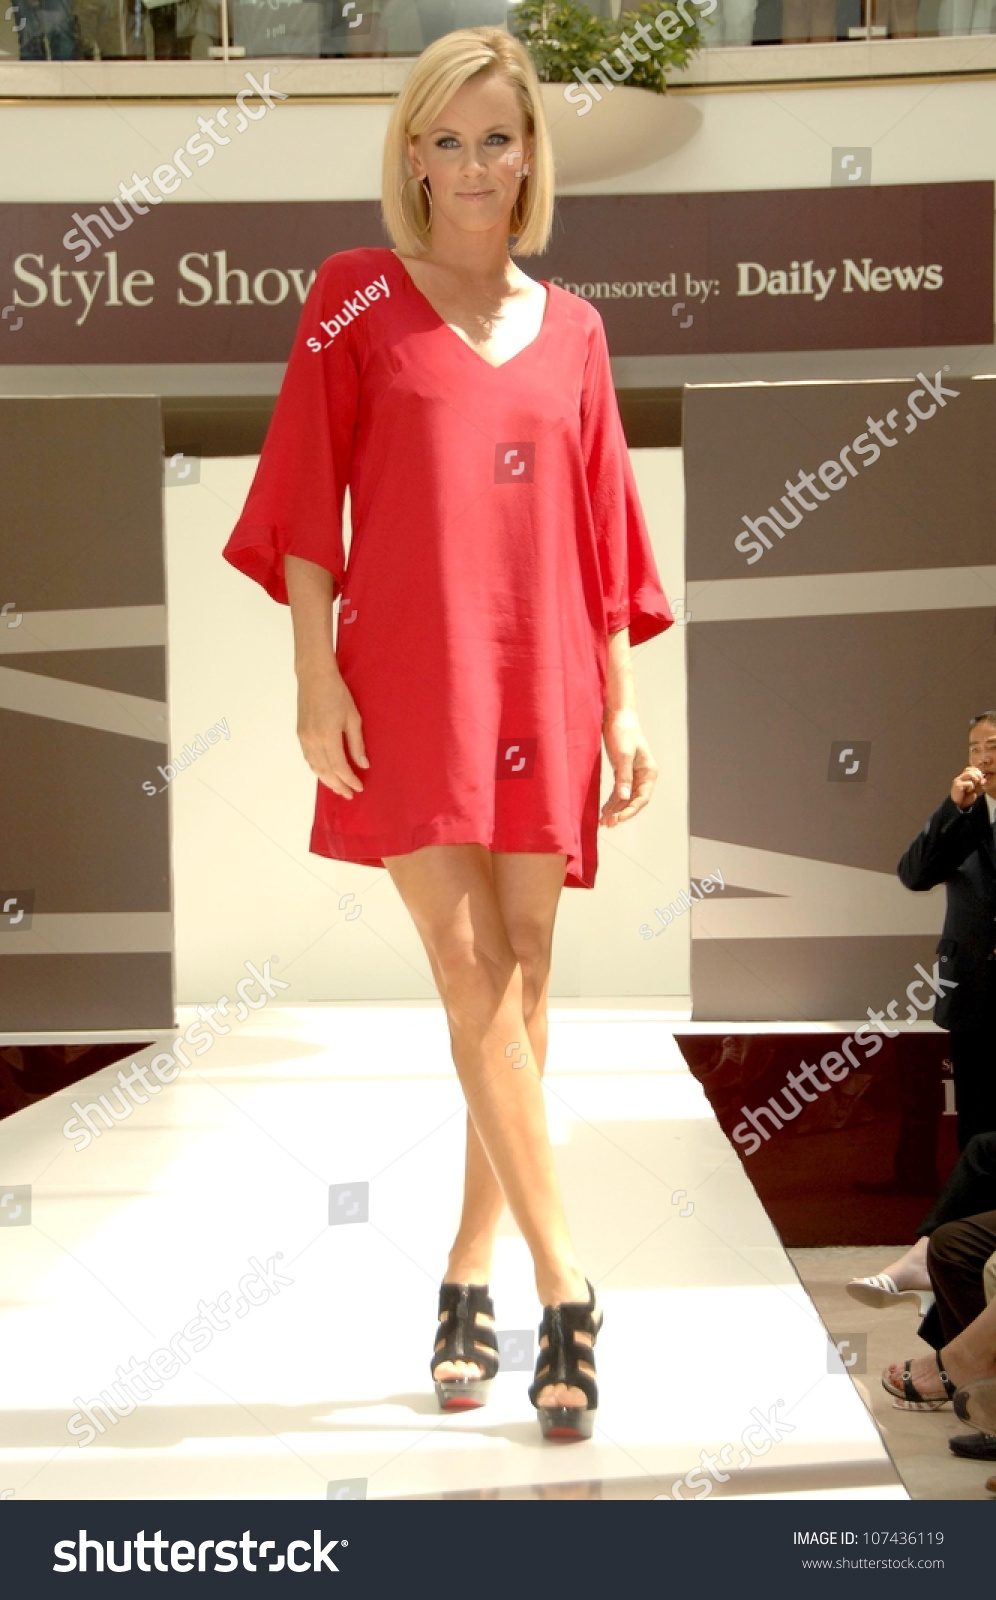 Jenny Mccarthy Style Showcase Fashion Show Stock Photo